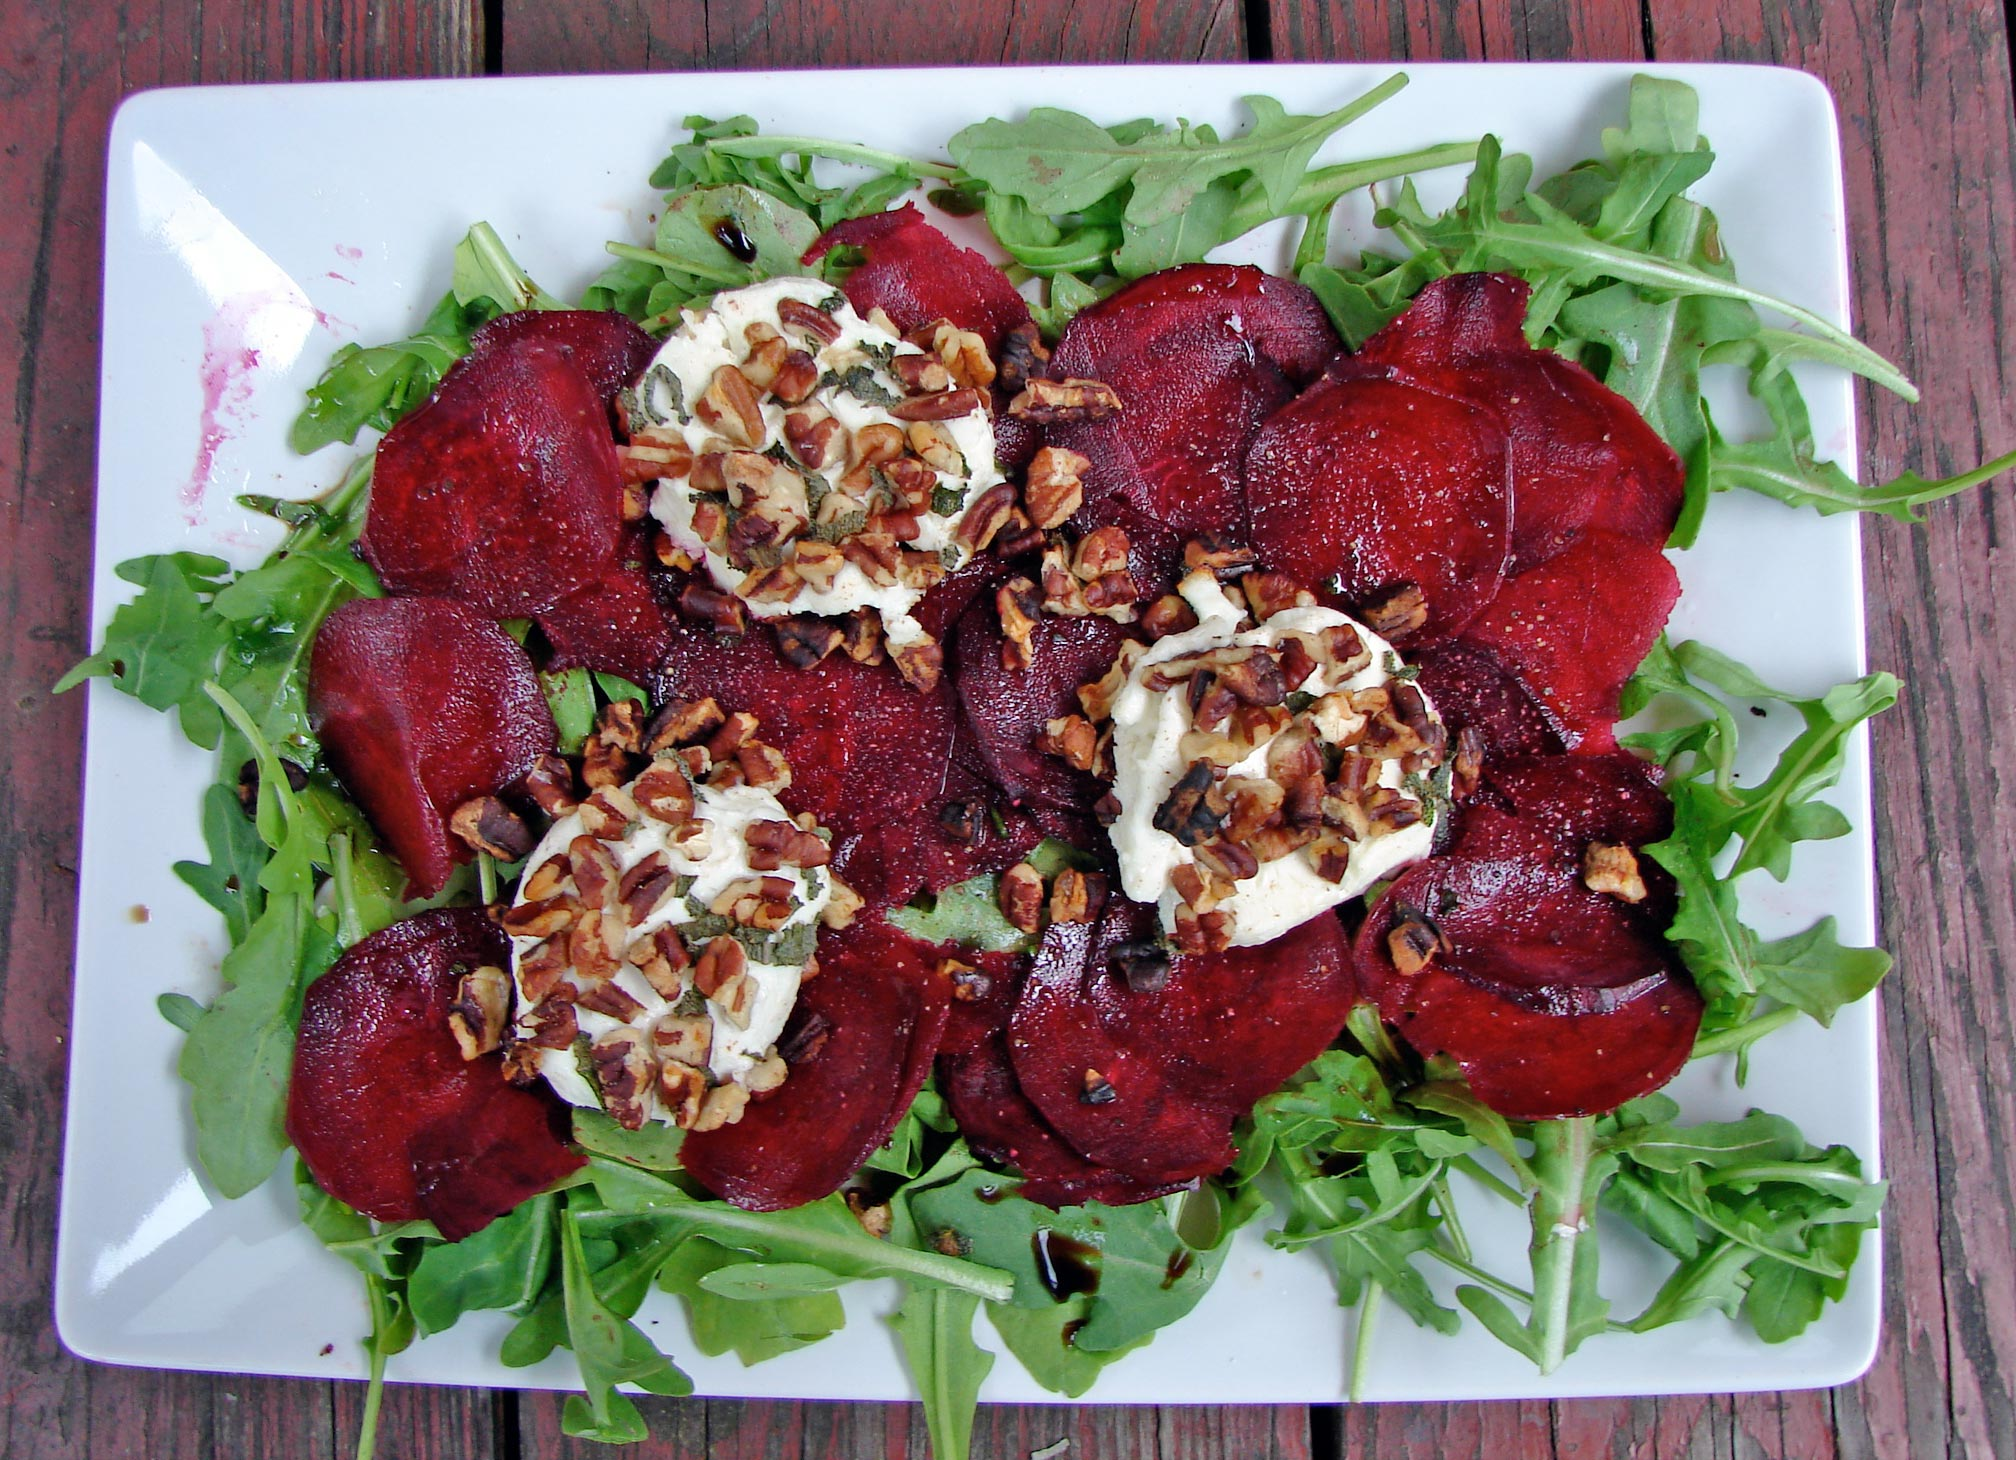 ... goat crimson beet carpaccio beets with goat cheese arugula beet